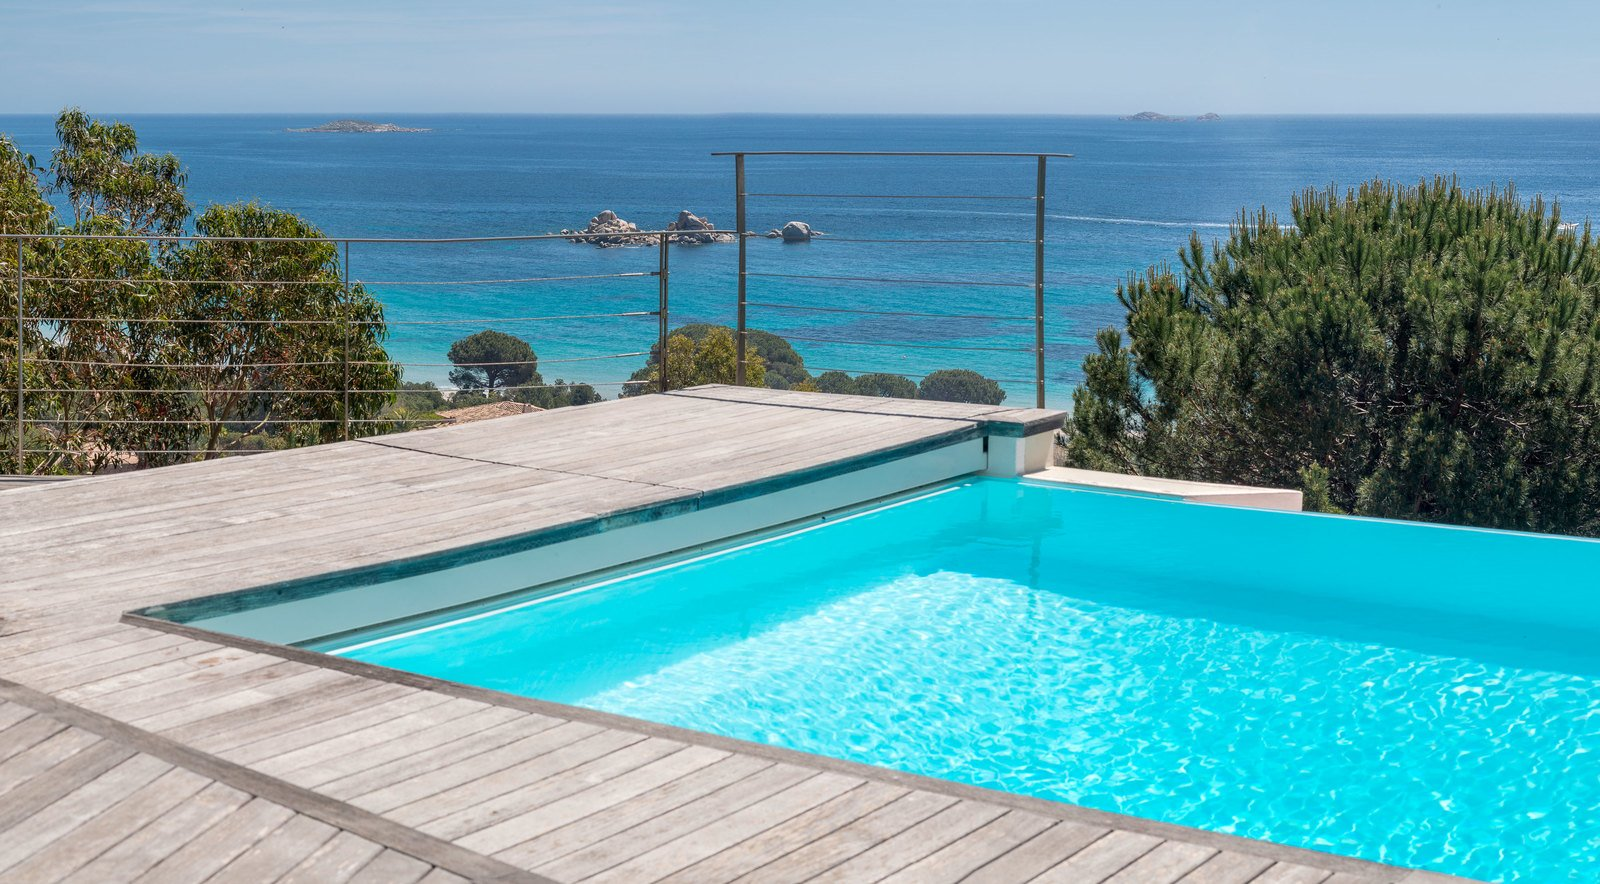 For sale in palombaggia villa with magnificent sea view for Camping corse bastia avec piscine